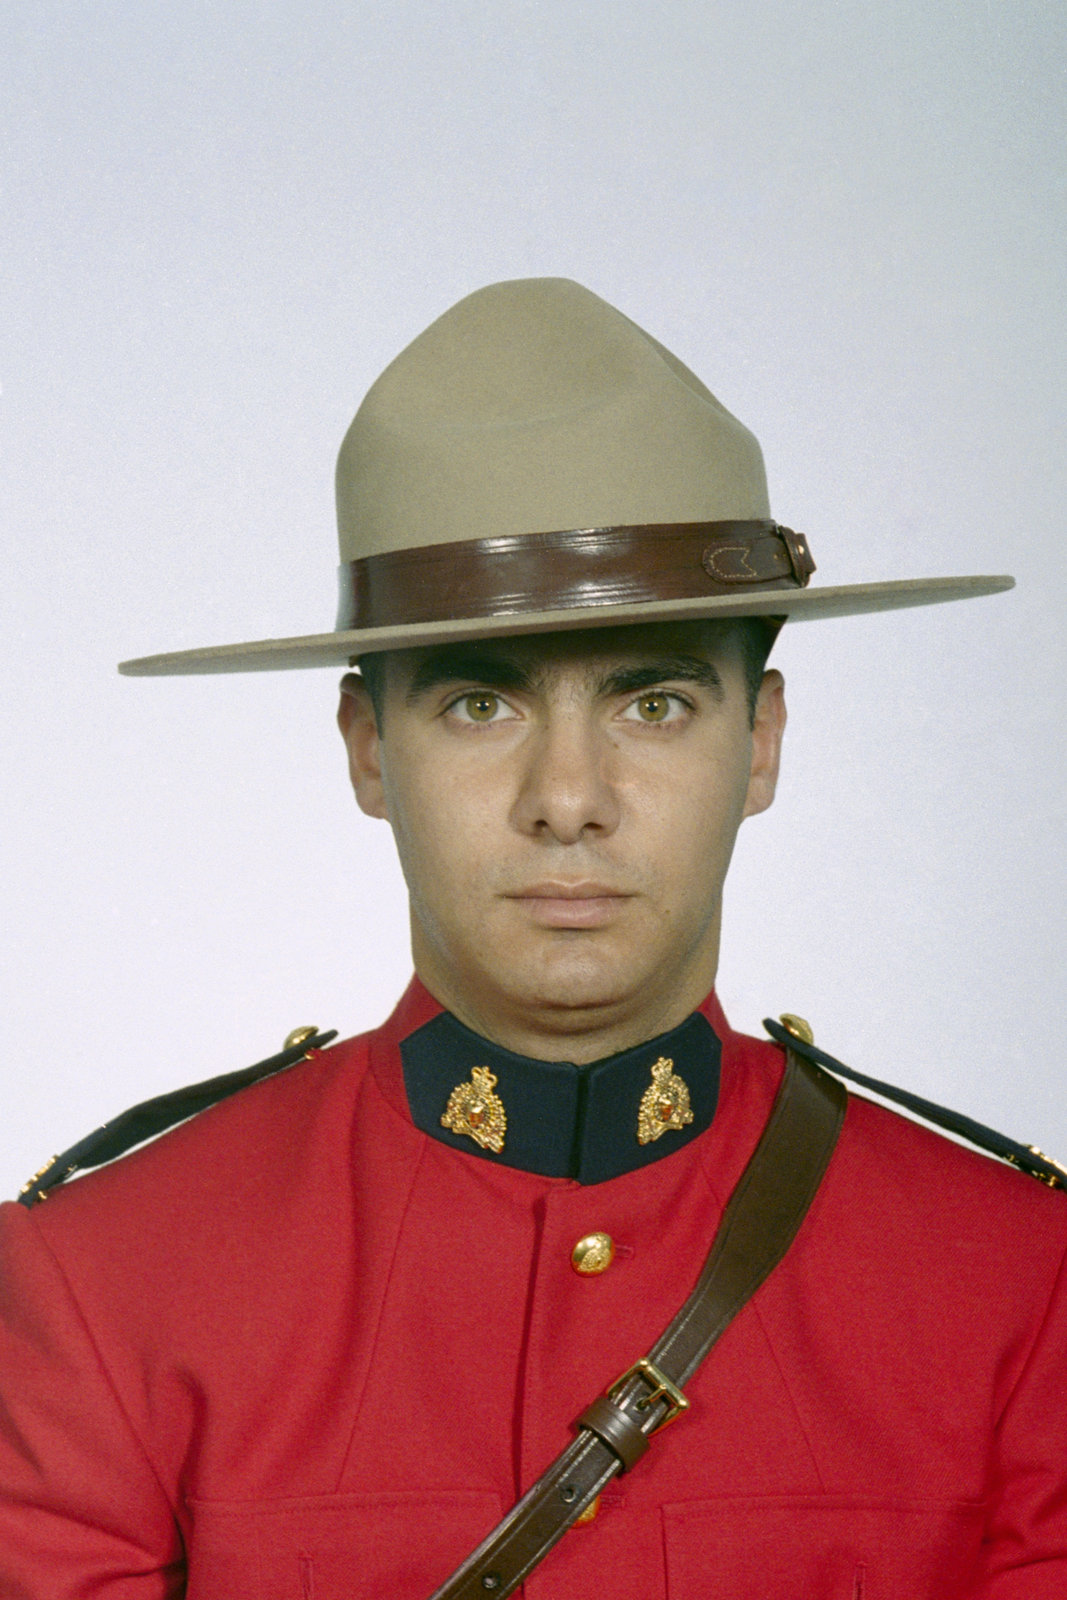 Constable Wael Toufic Audi – © Her Majesty the Queen in Right of Canada as represented by the Royal Canadian Mounted Police